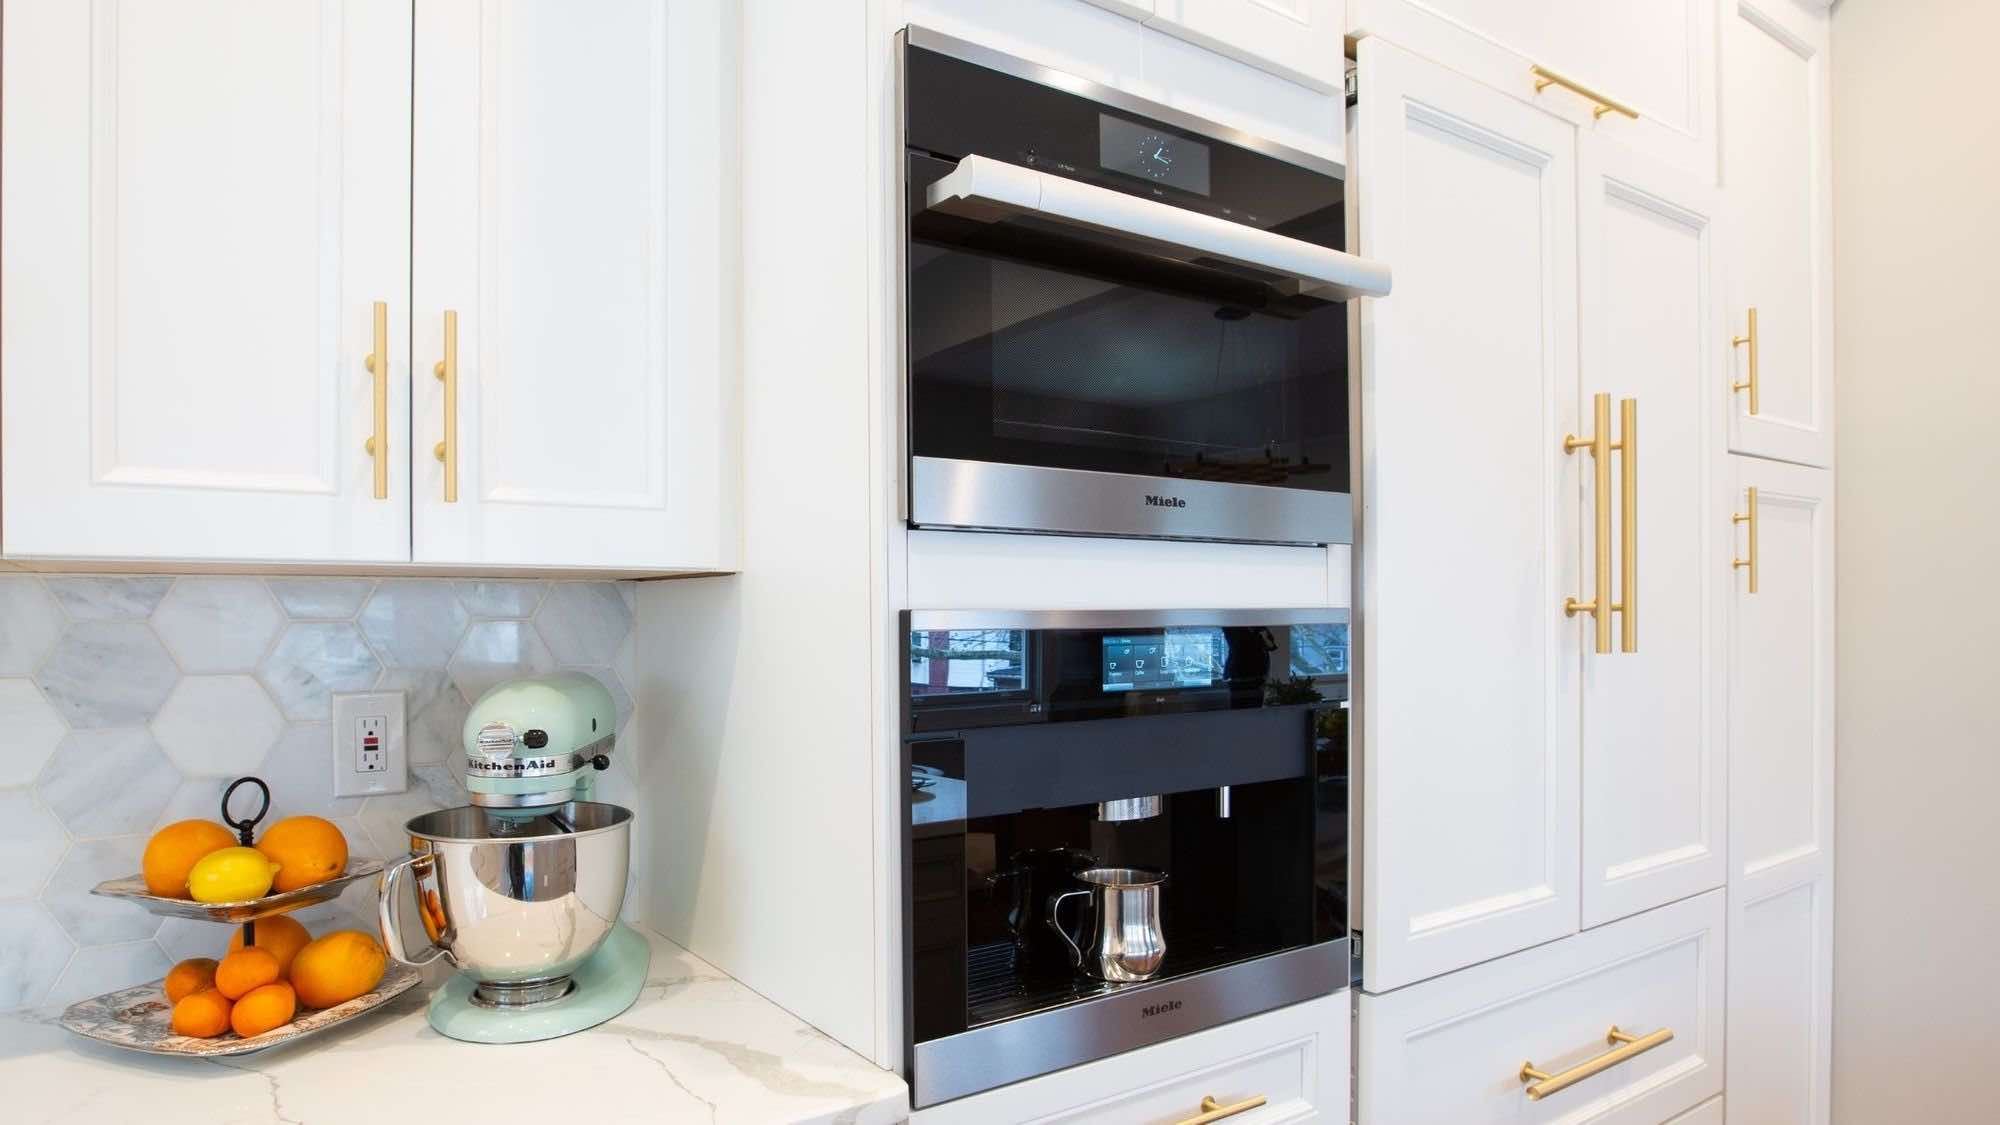 Miele coffee maker built-in installation